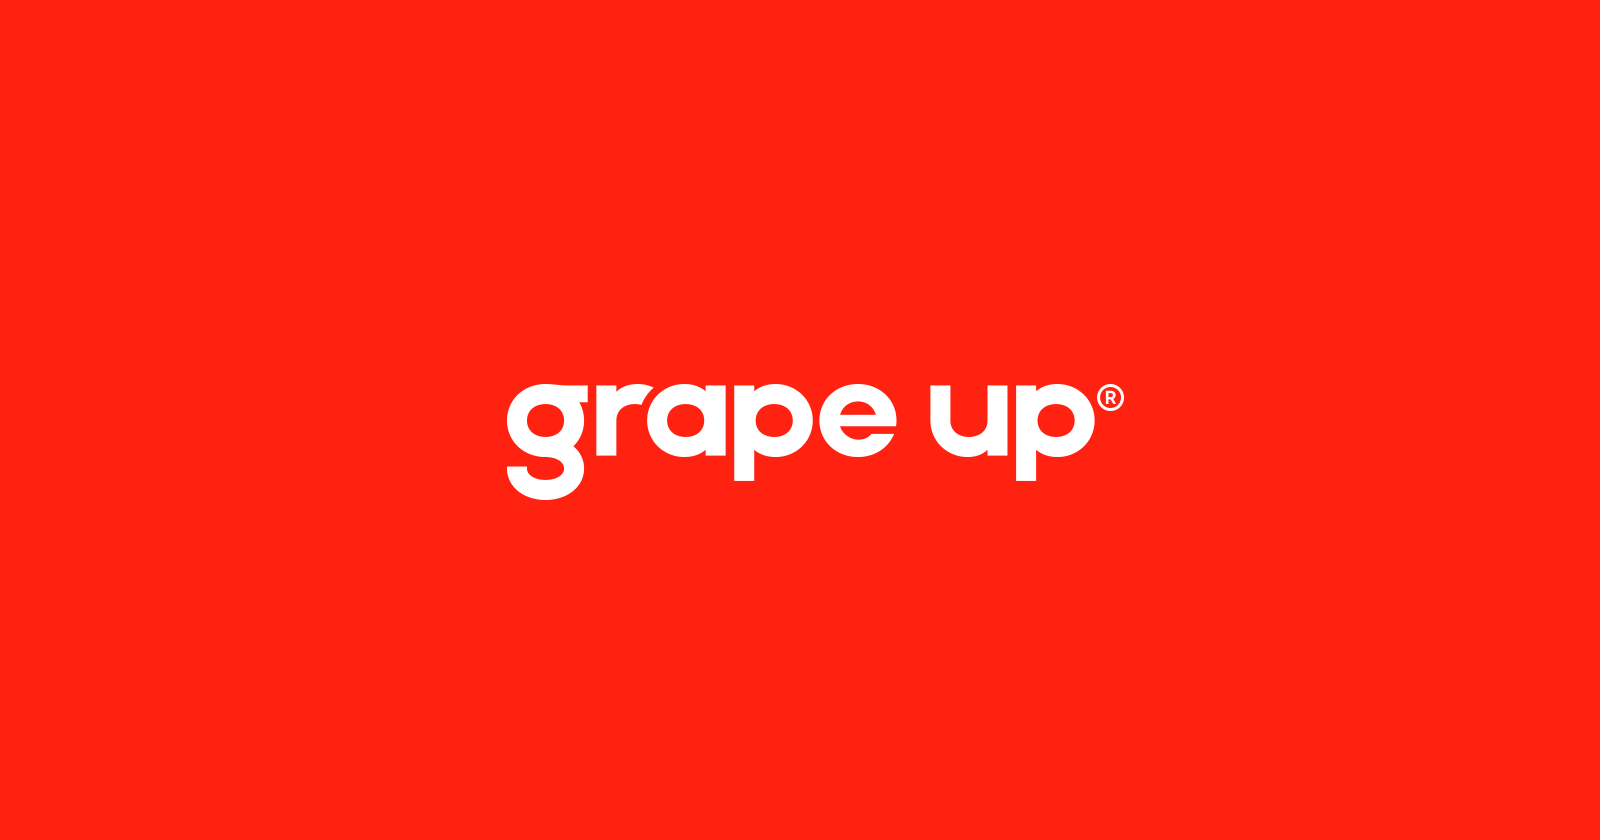 Grape Up